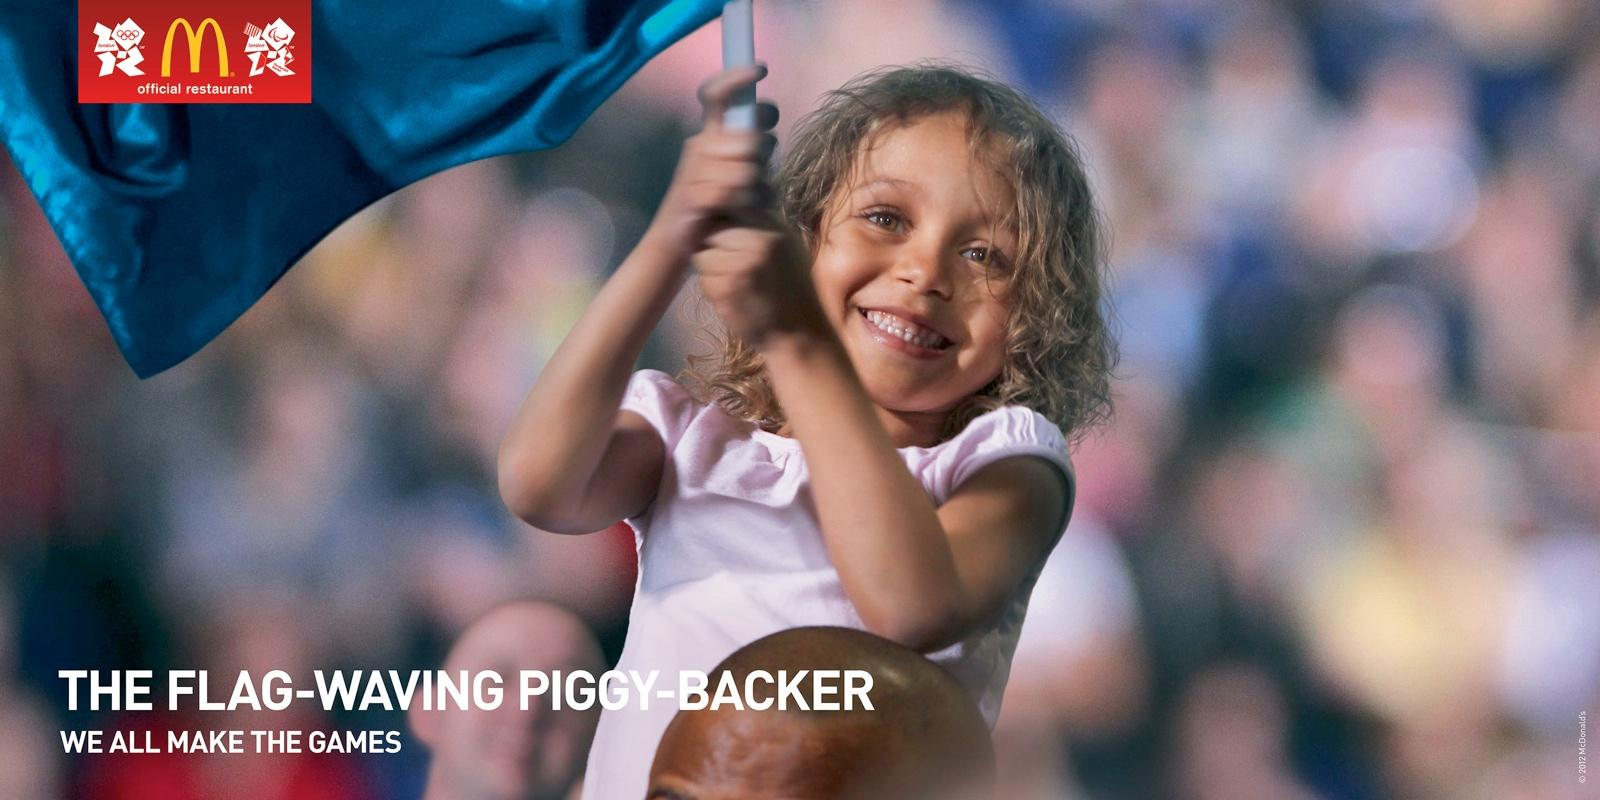 McDonald's Outdoor Ad -  We All Make the Games, The Flag-Waving Piggy-Backer